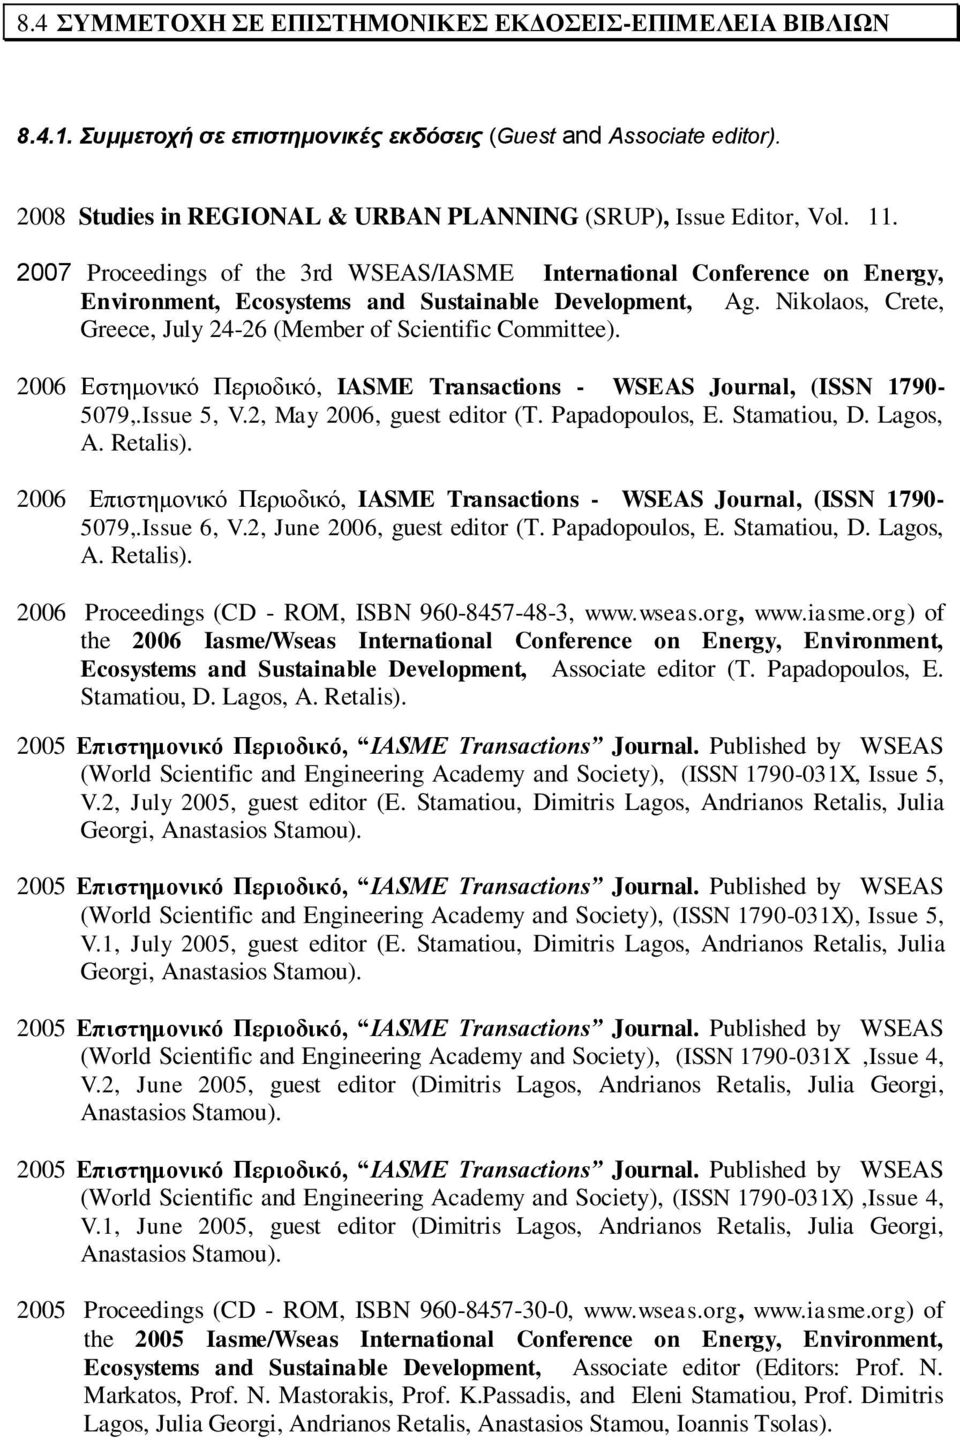 Nikolaos, Crete, Greece, July 24-26 (Member of Scientific Committee). 2006 Δζηεκνληθφ Πεξηνδηθφ, IASME Transactions - WSEAS Journal, (ISSN 1790-5079,.Issue 5, V.2, May 2006, guest editor (T.